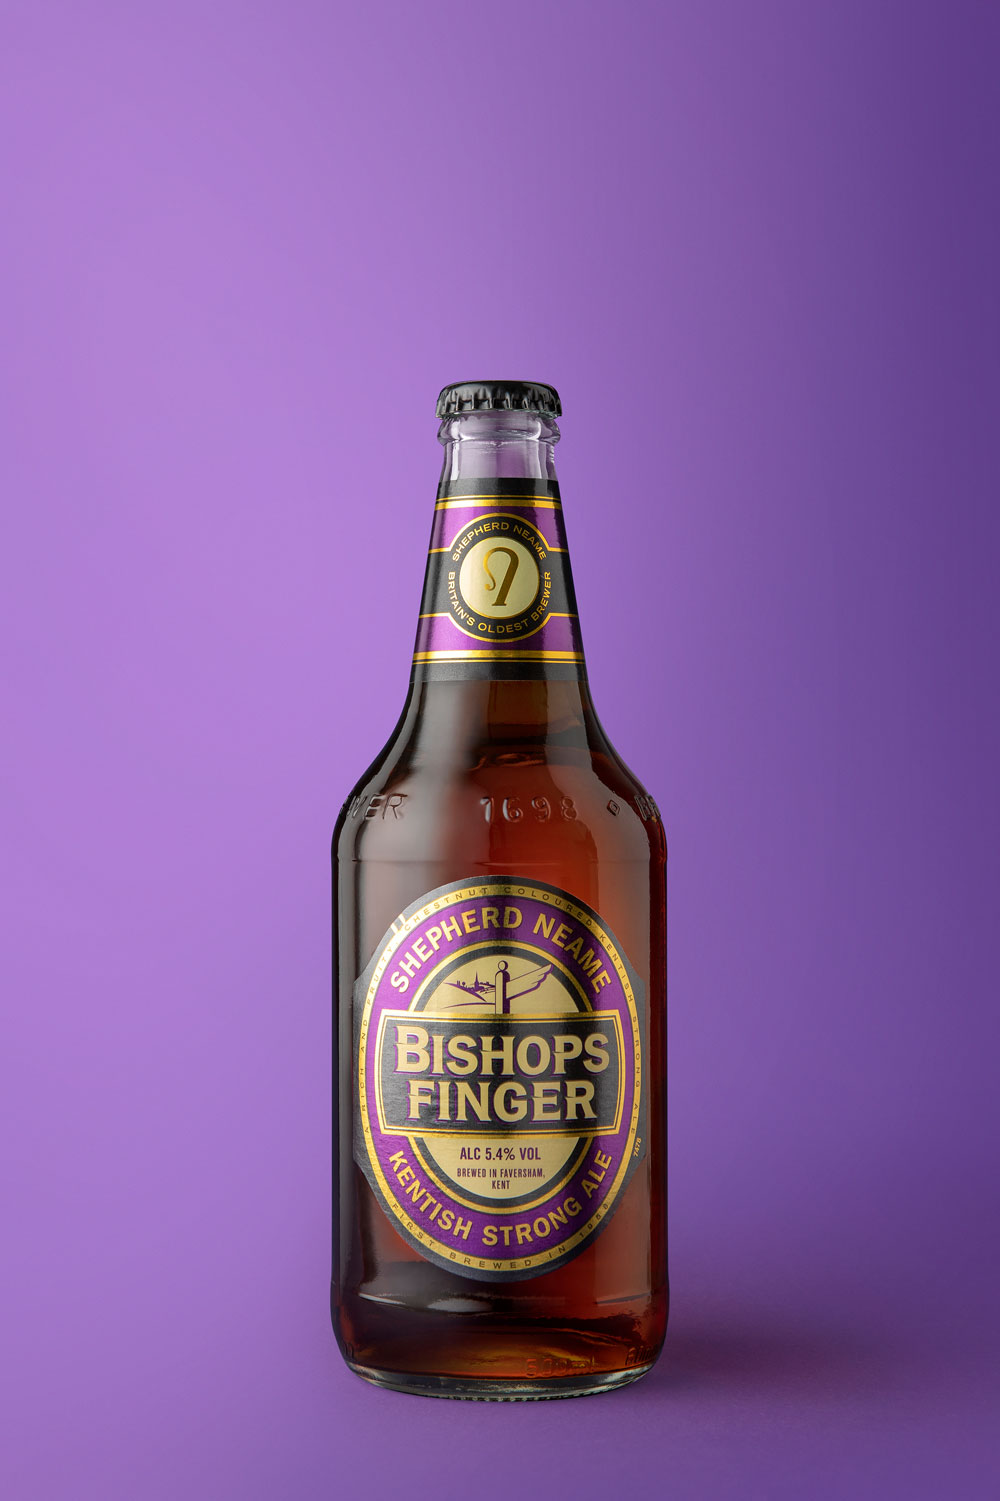 Shepherd Neame - Bishop's Finger